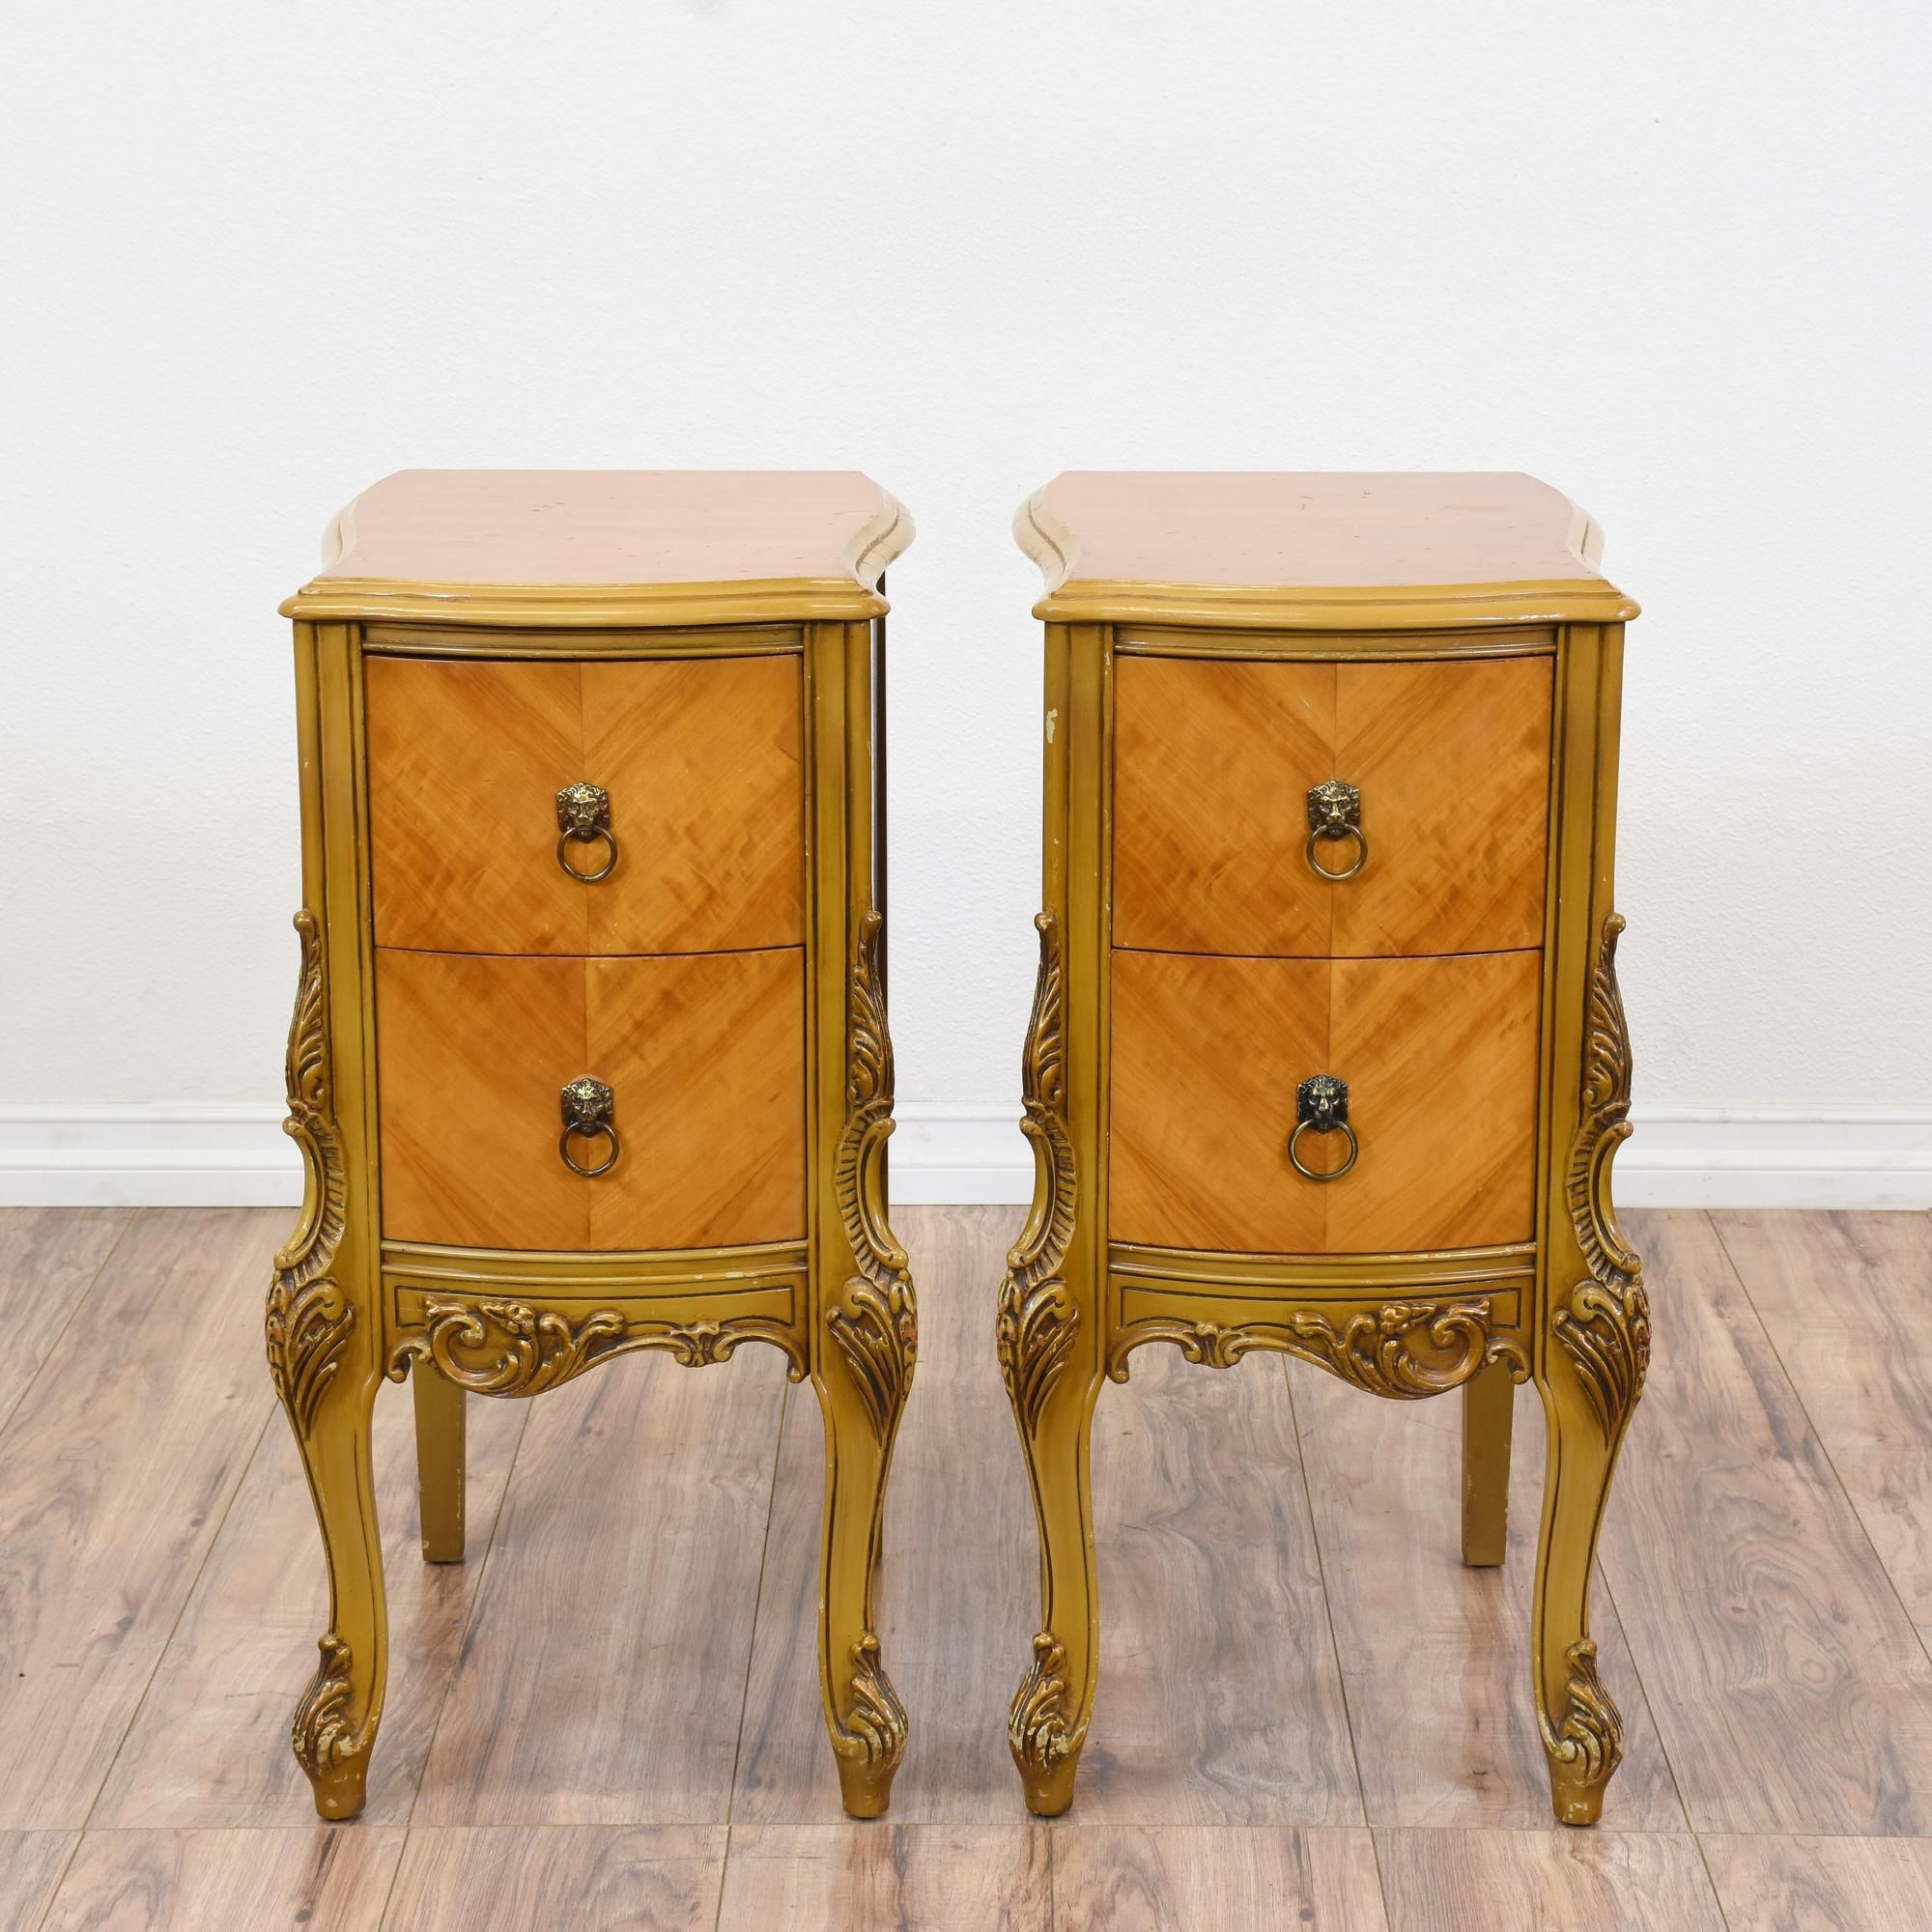 this pair of antique french provincial nightstands are featured in a solid wood with a gorgeous